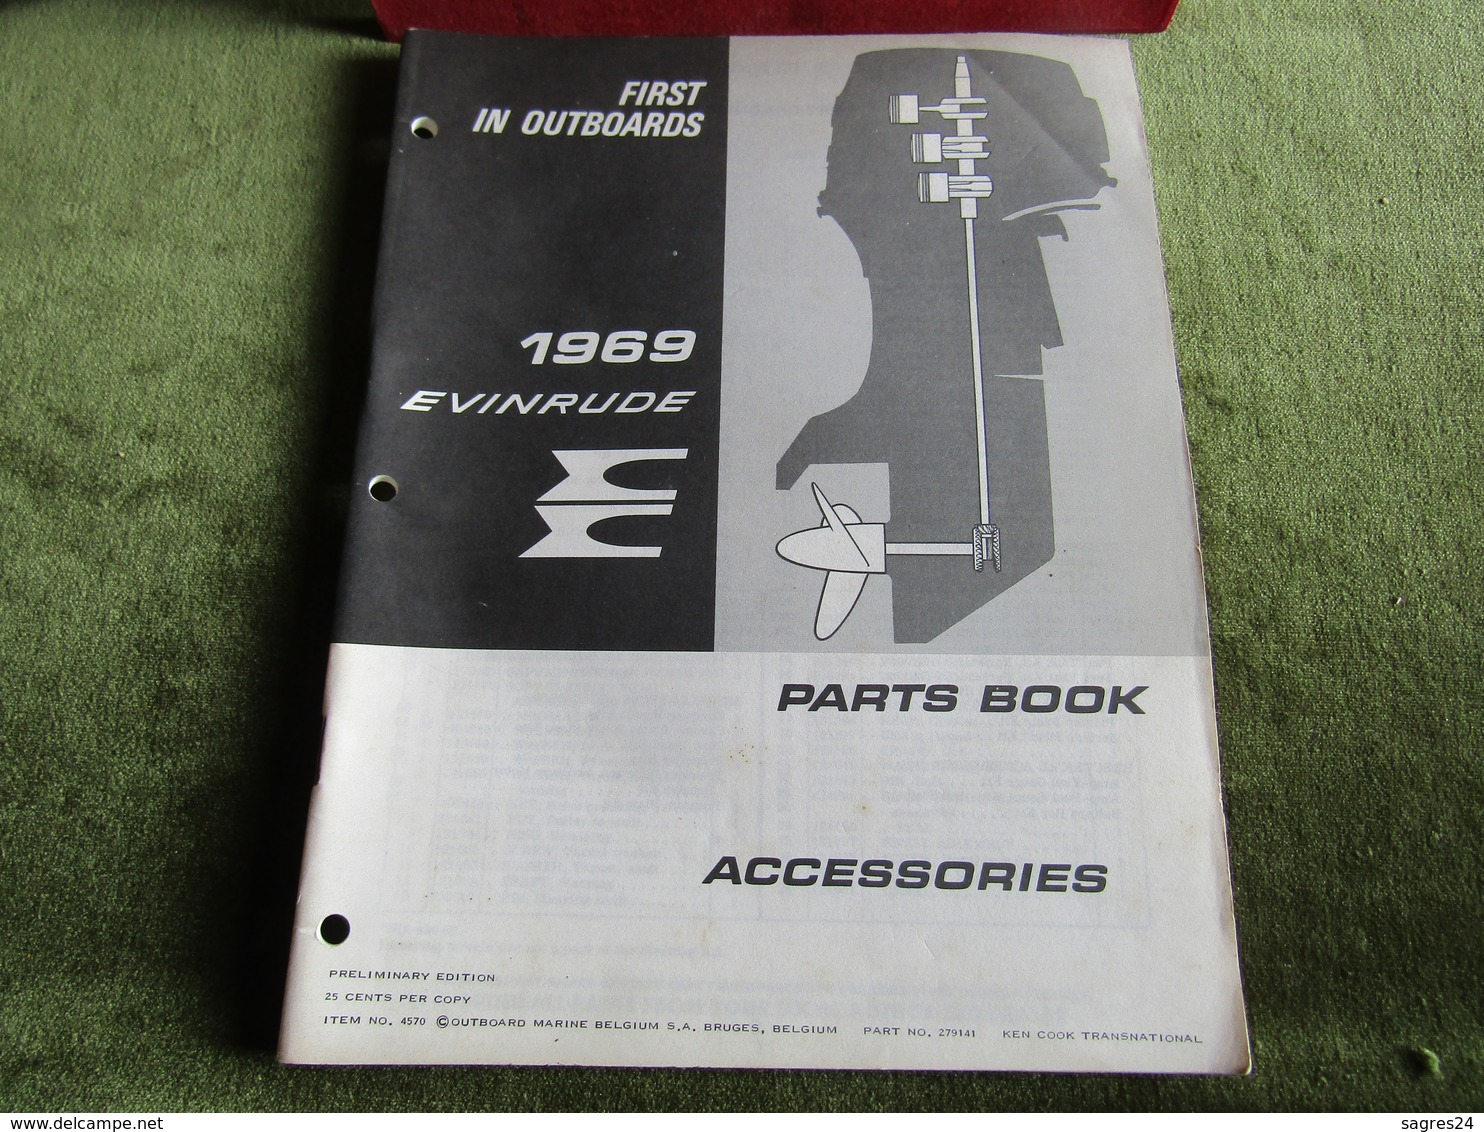 Evinrude Outboard Parts Book Accessories 1969 - Boats